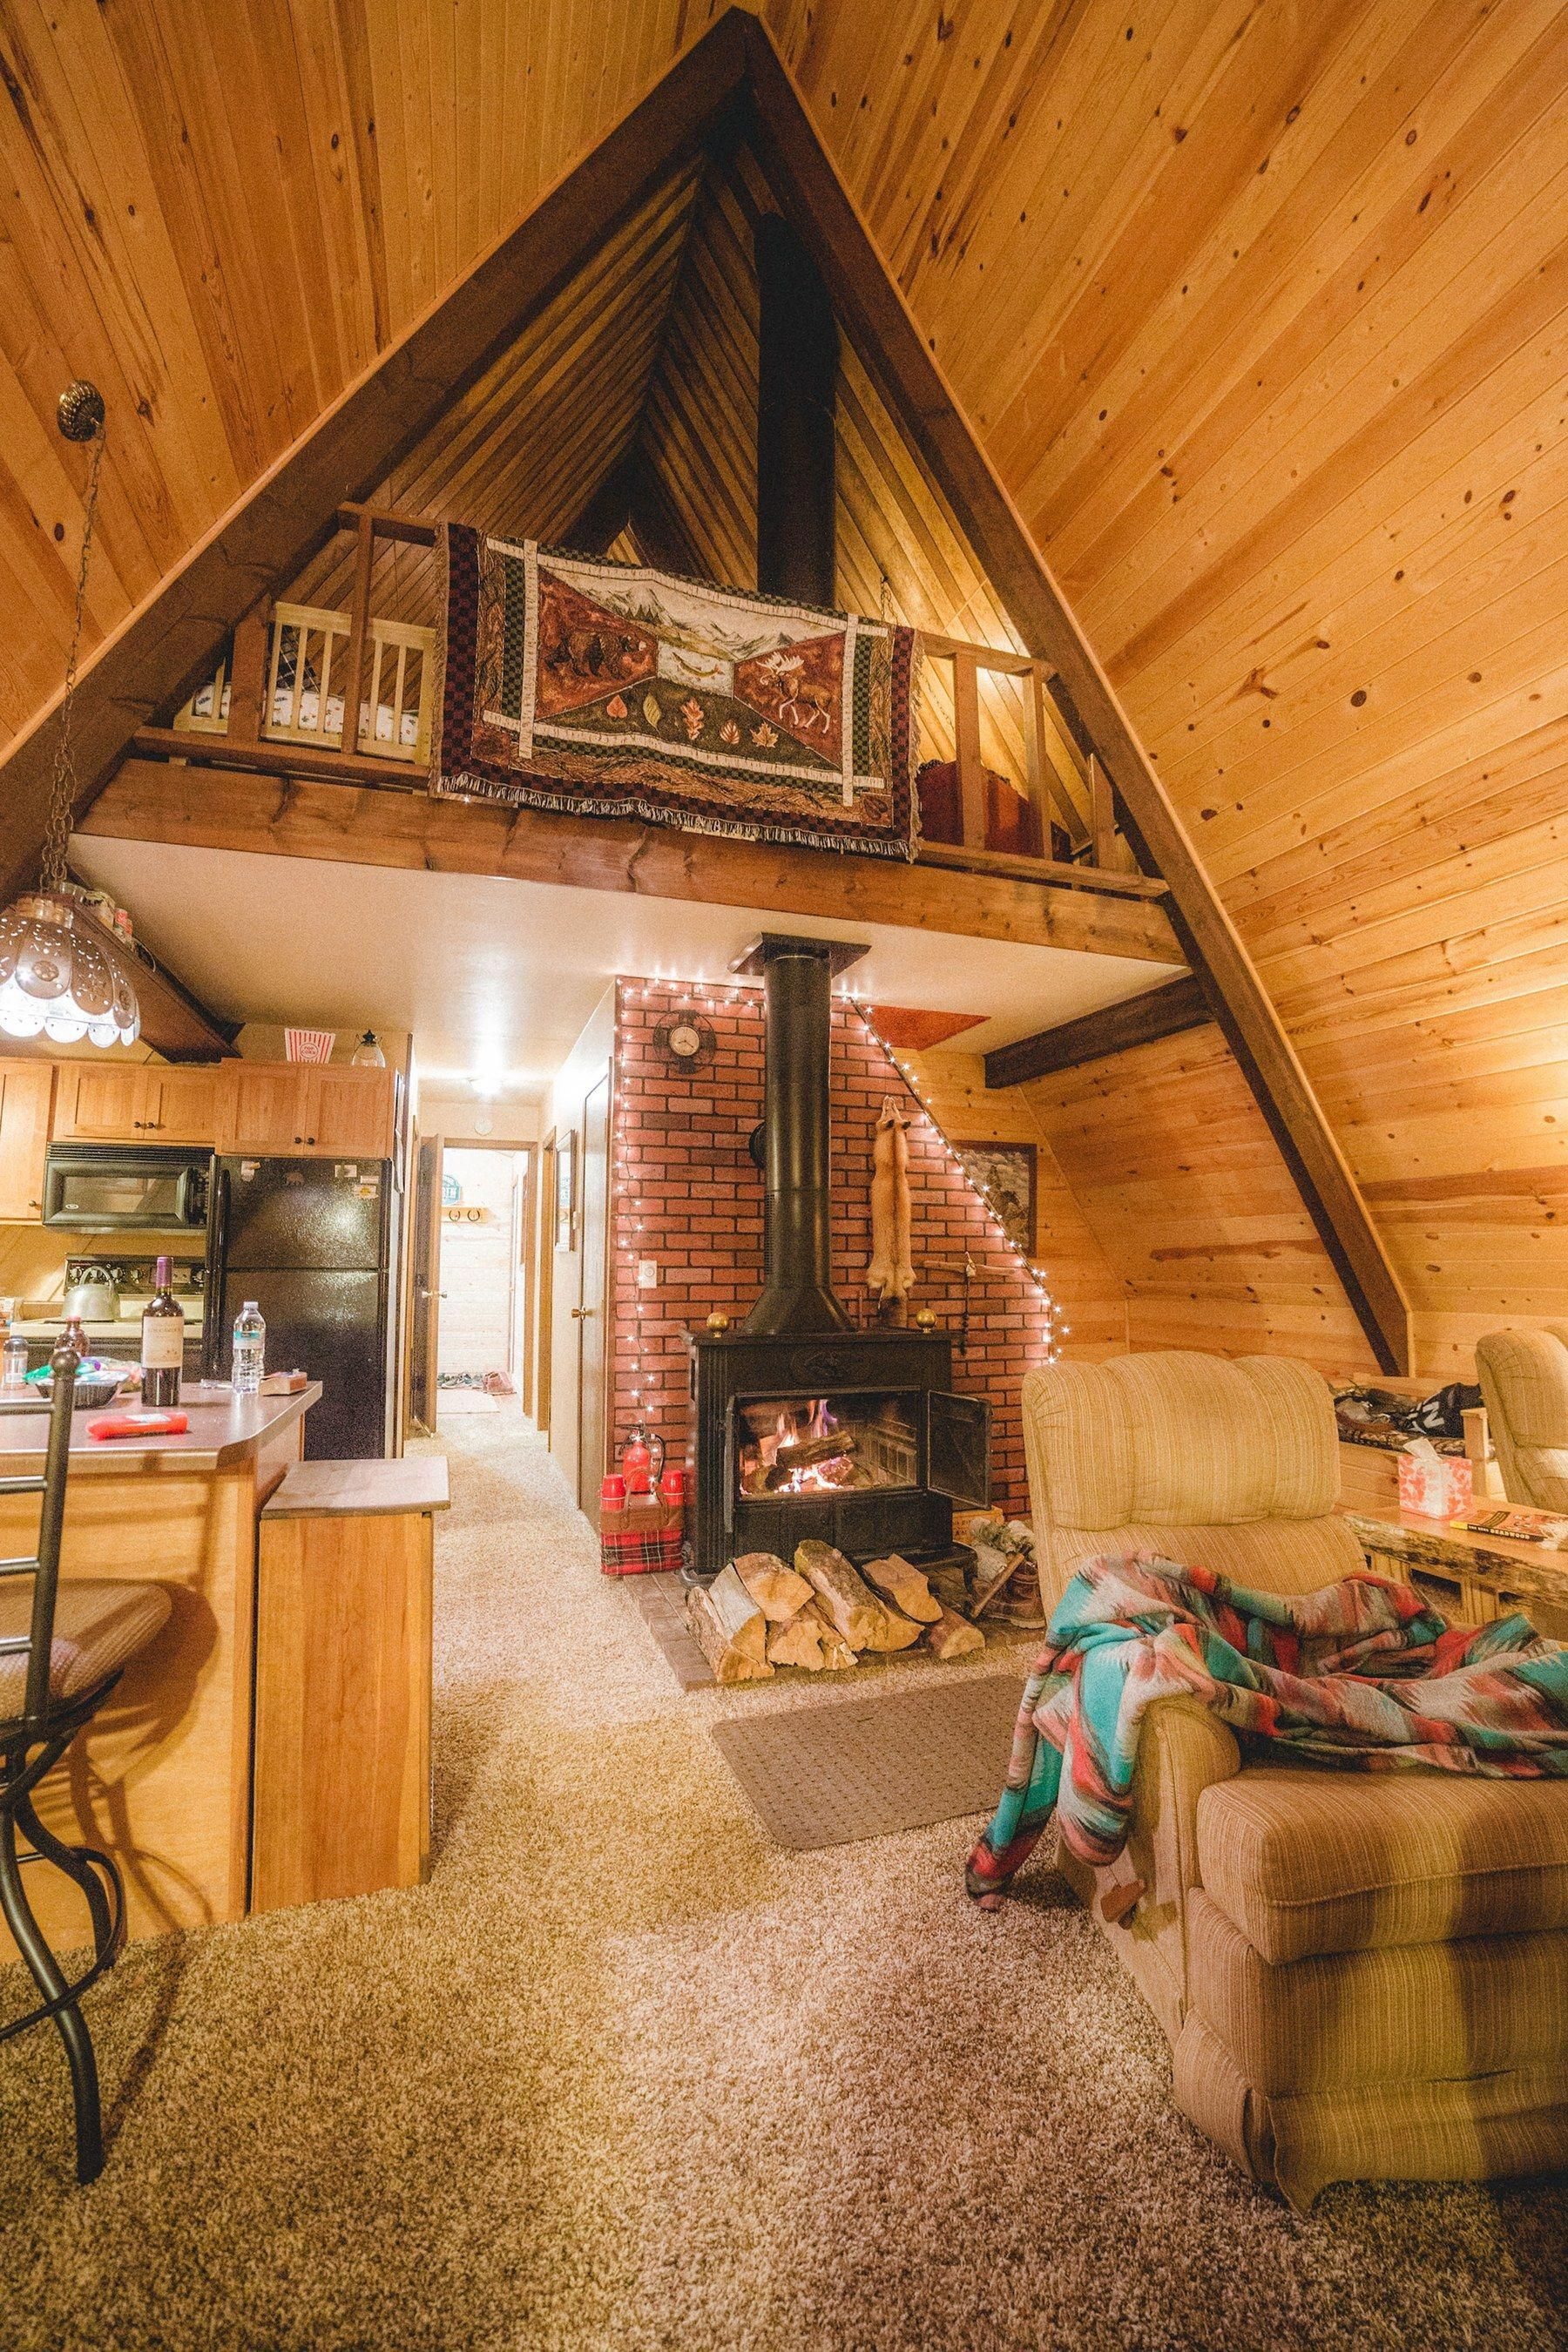 Dempsey Photographed This Stunning A Frame Tiny Home While Traveling In South Dakota Aframehouse In 2020 Tiny House Remodel Diy Tiny House Tiny House Design